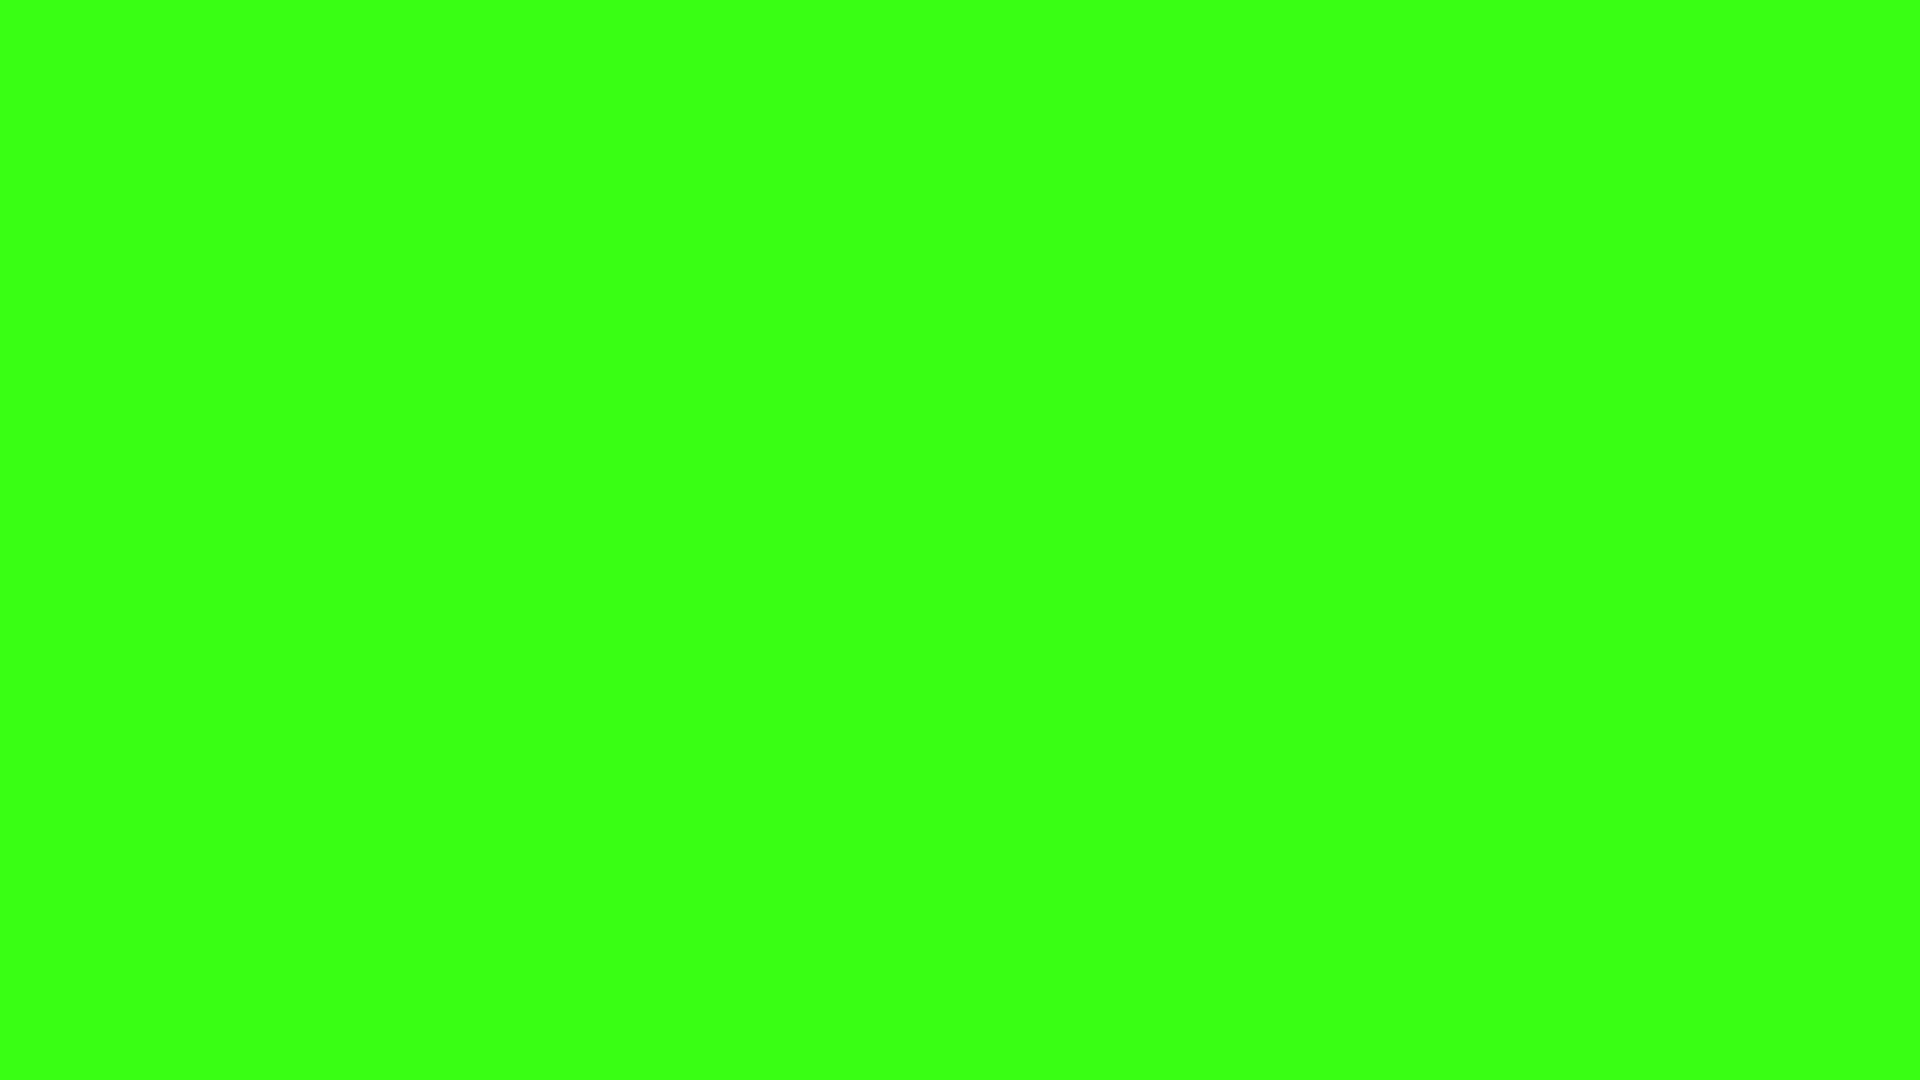 The Color Lime Green. Plain Neon Green Background …